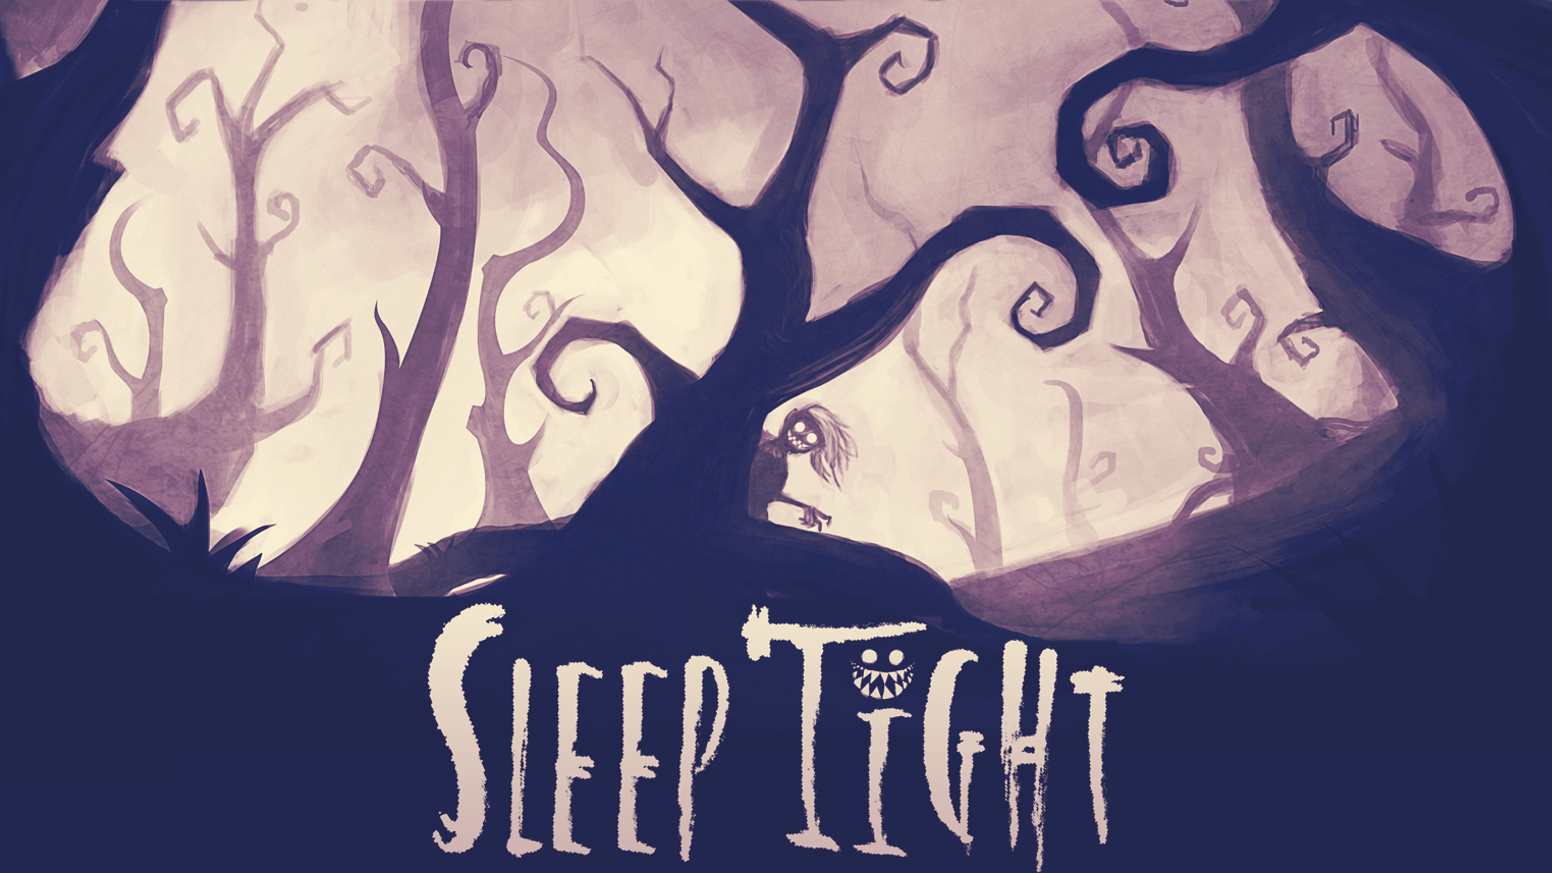 A fast-paced, card action game of dreams, torn souls, deceit, and escape from nightmares